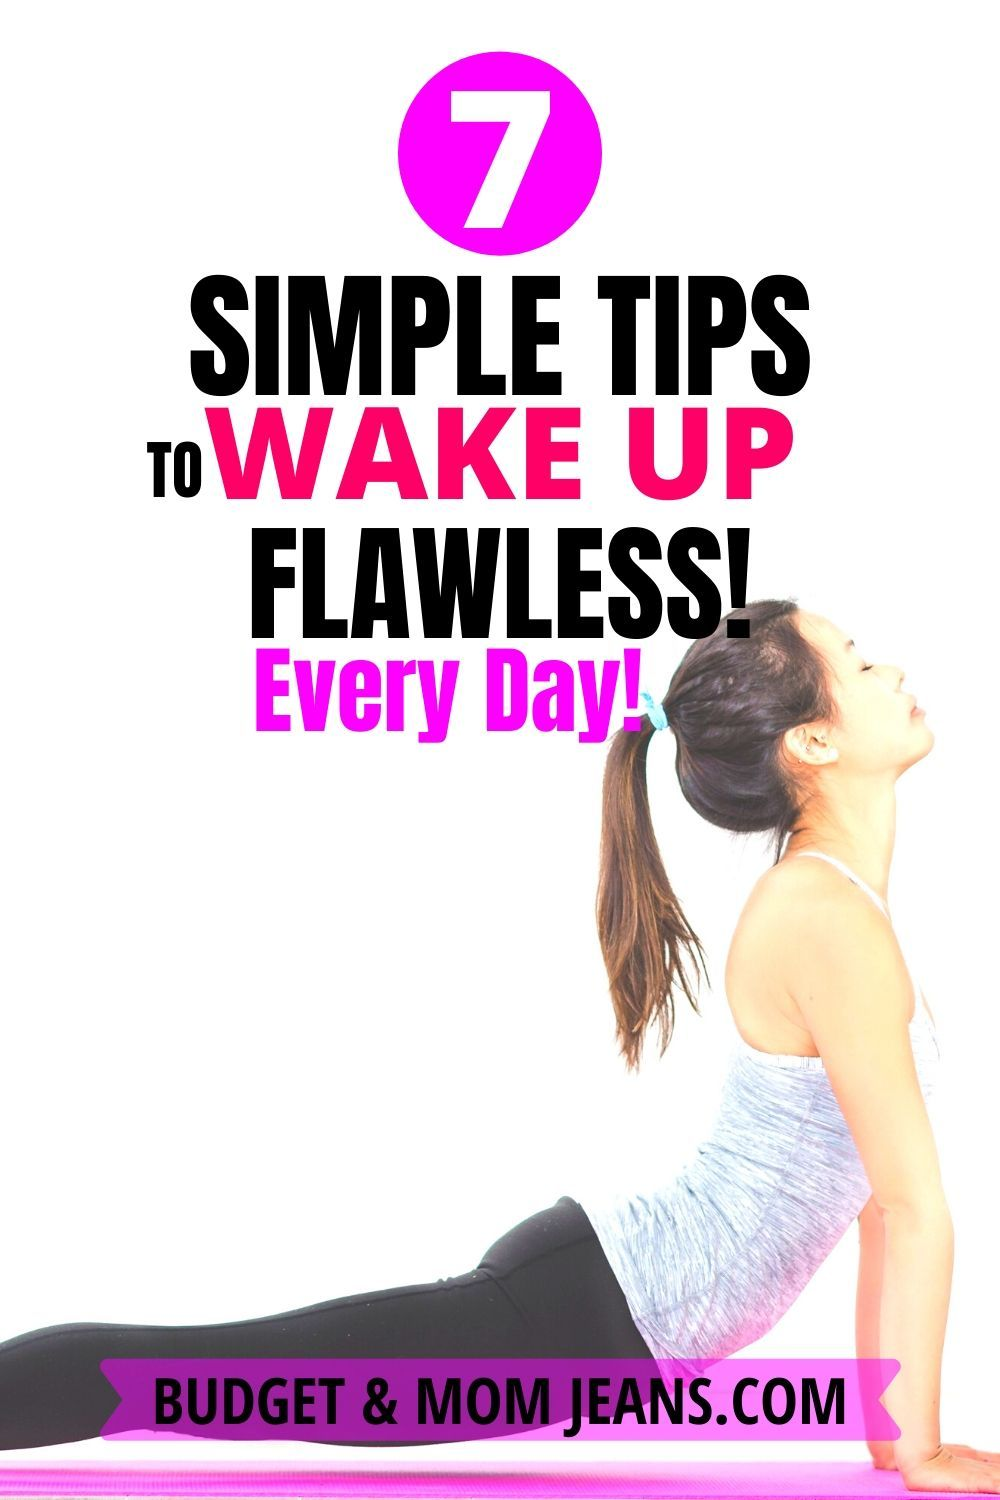 7 Simple Tips To Wake Up Flawless Every Day. in 2020